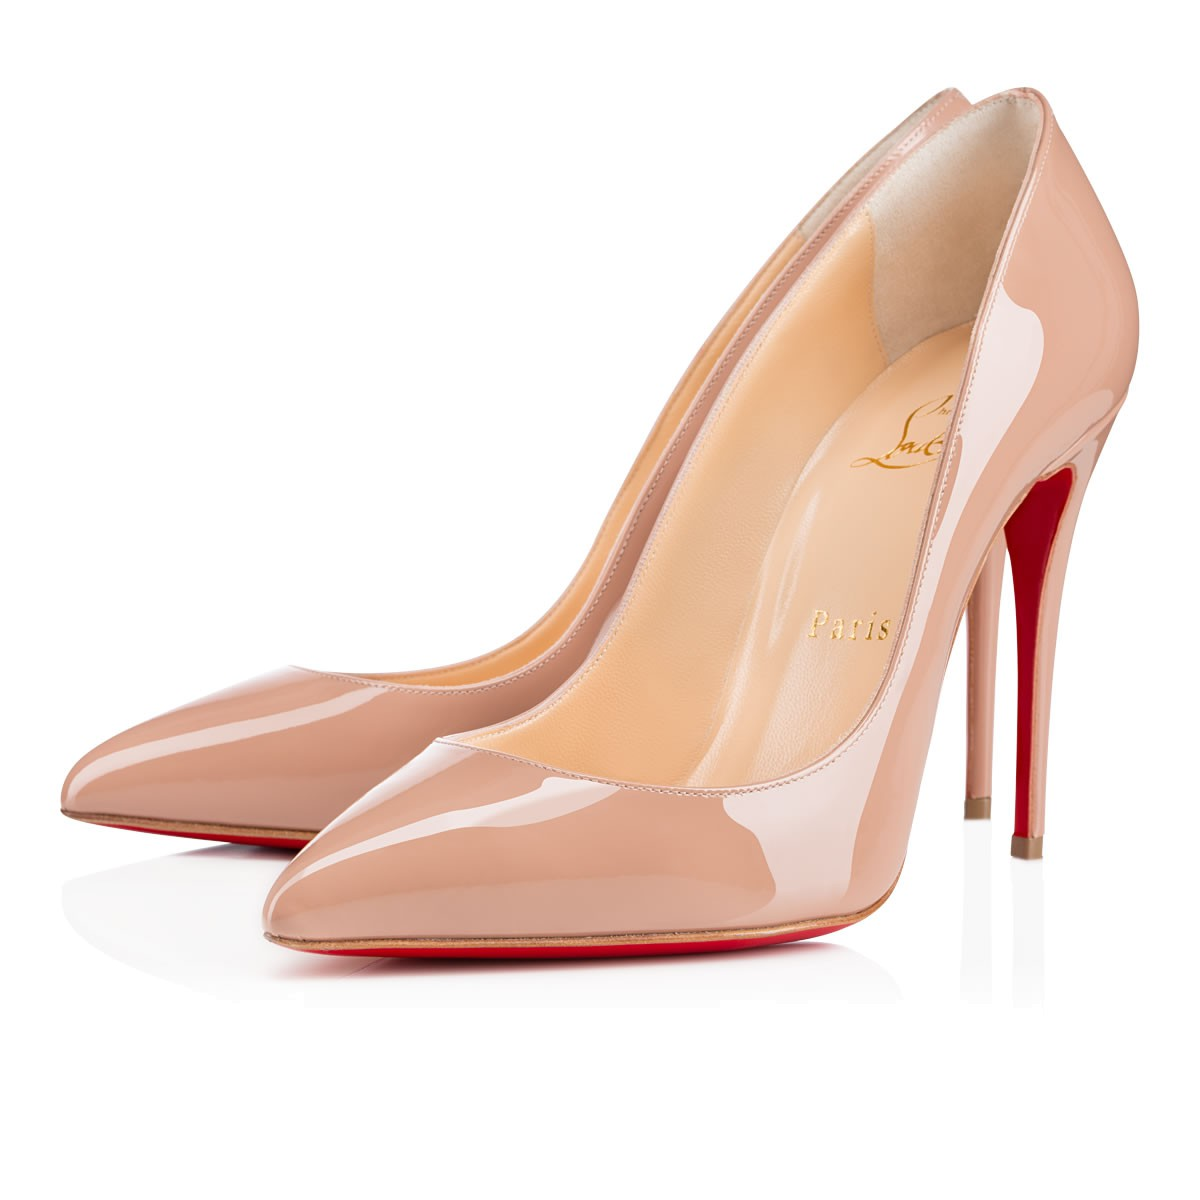 Pigalle Follies Patent Leather Pumps - Nude Size 9.5 in Beige